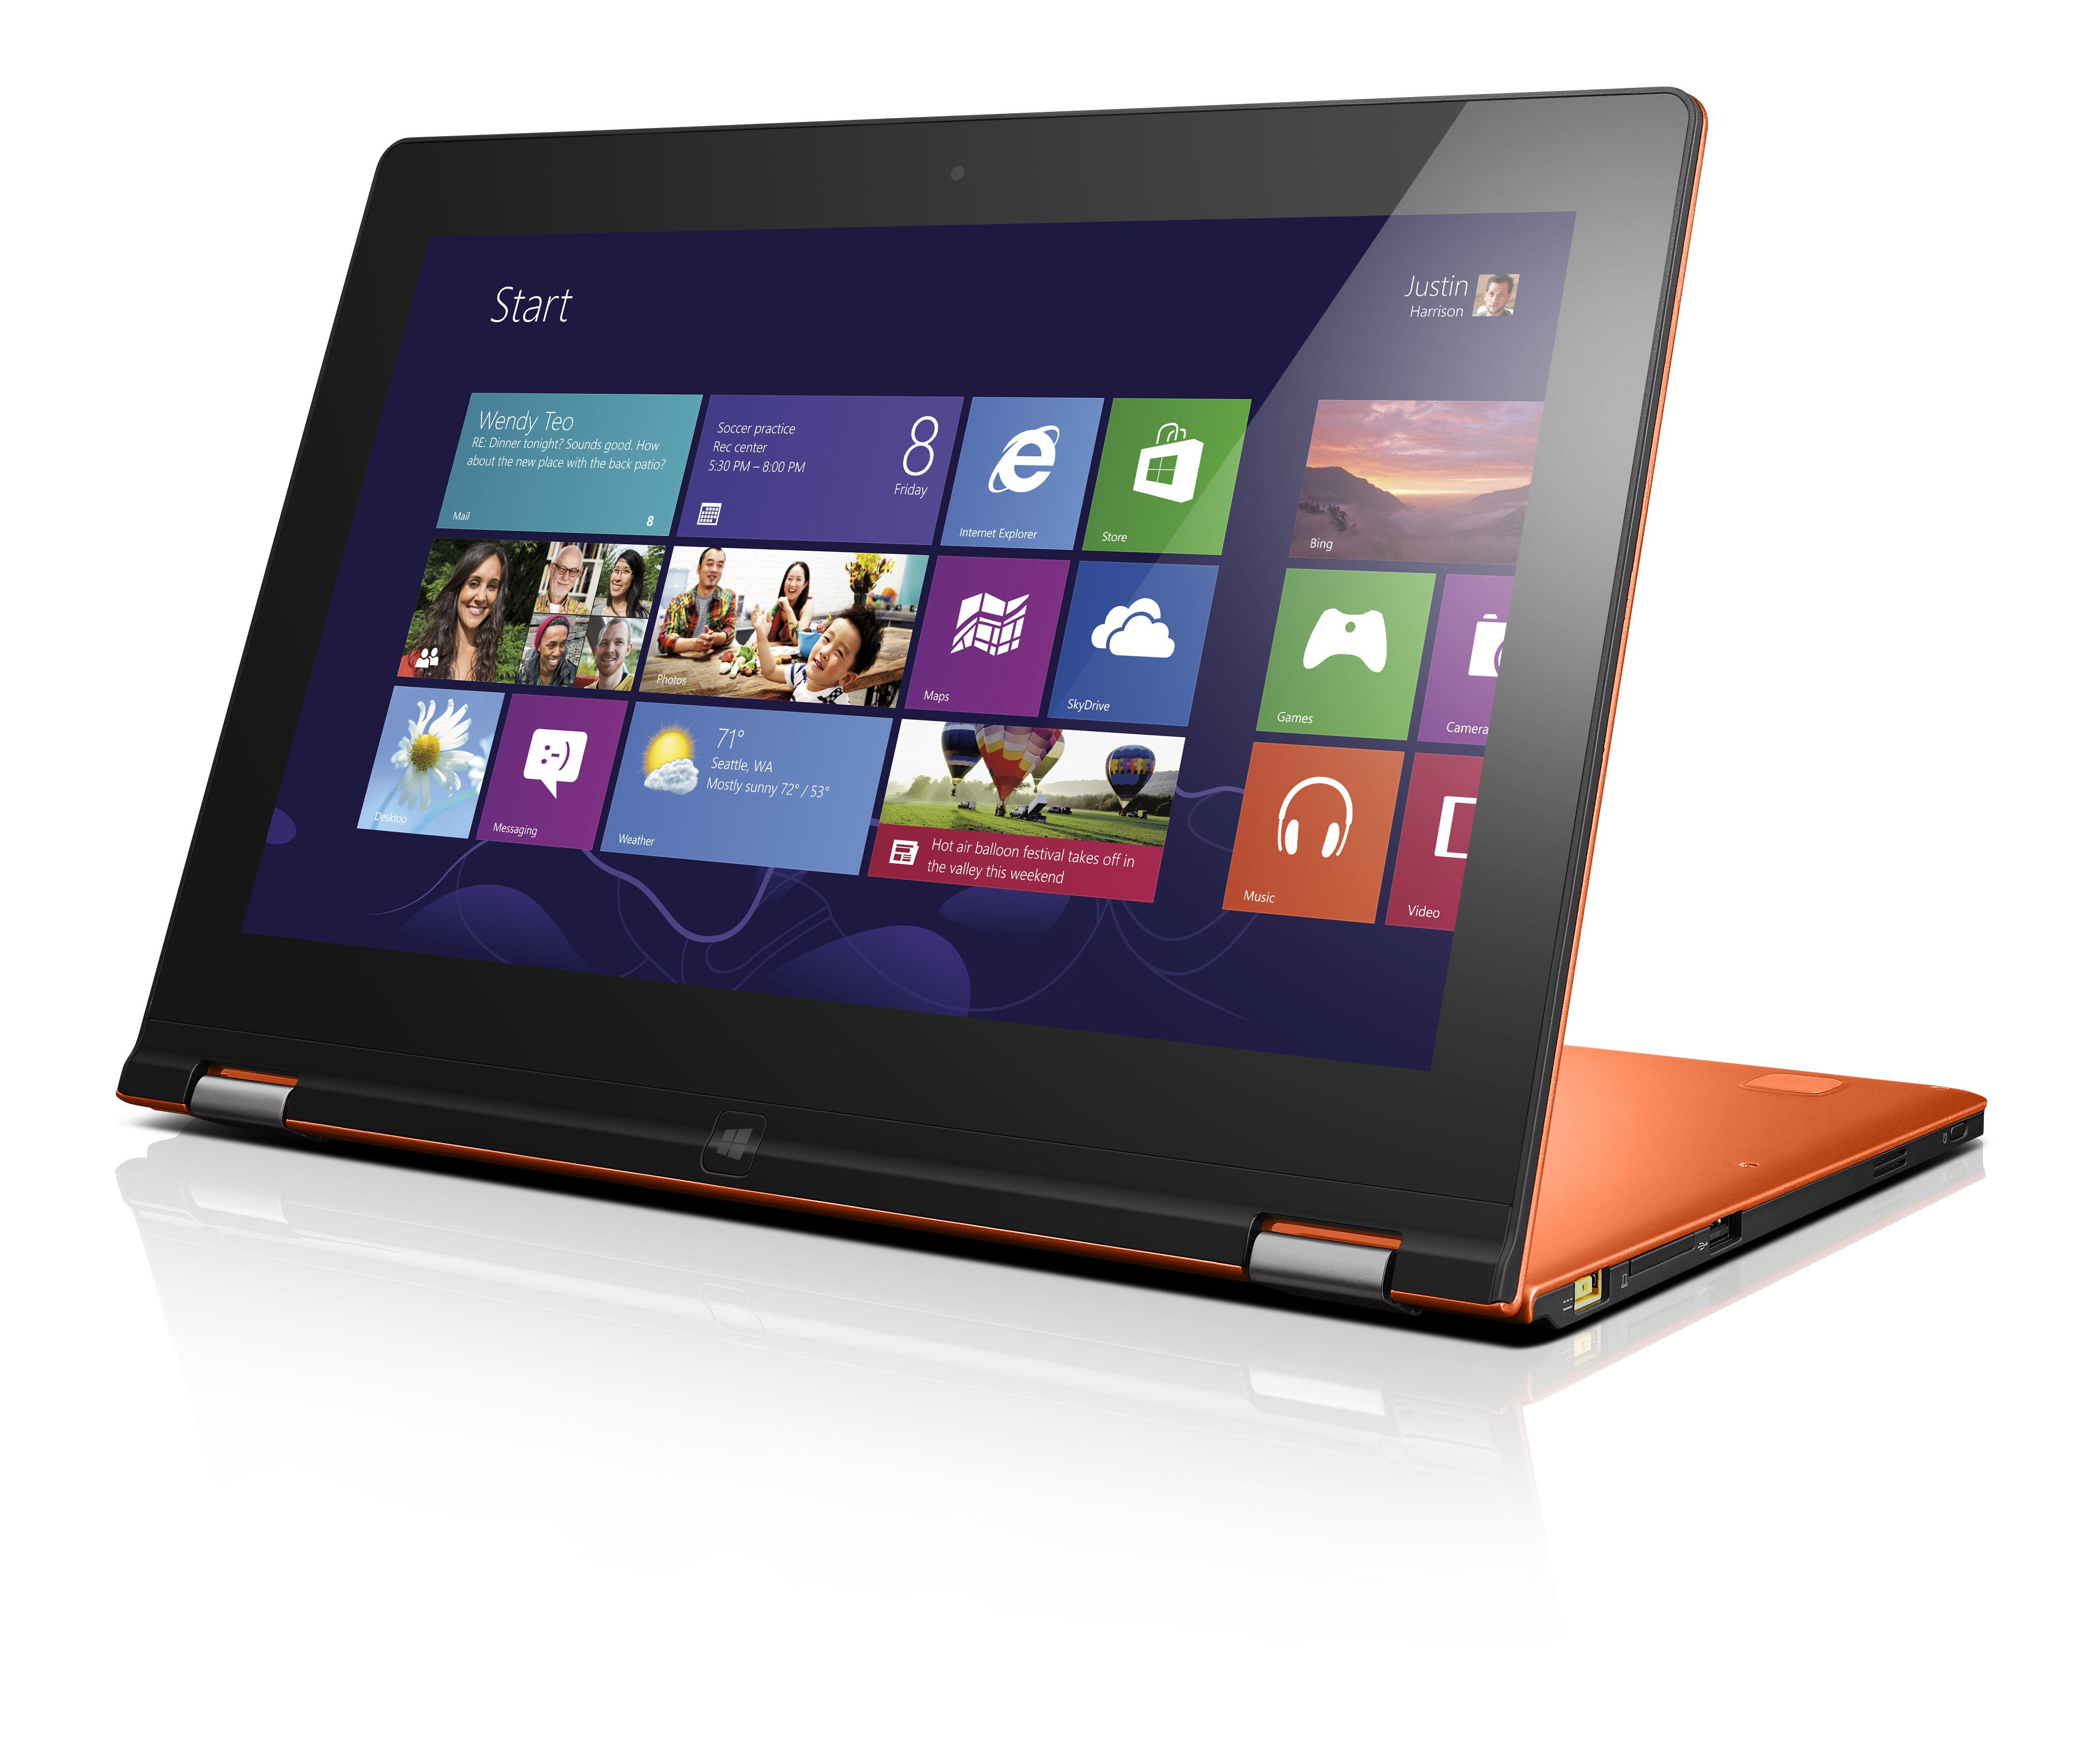 Lenovo's IdeaPad Yoga 13: Not Your Typical Ultrabook